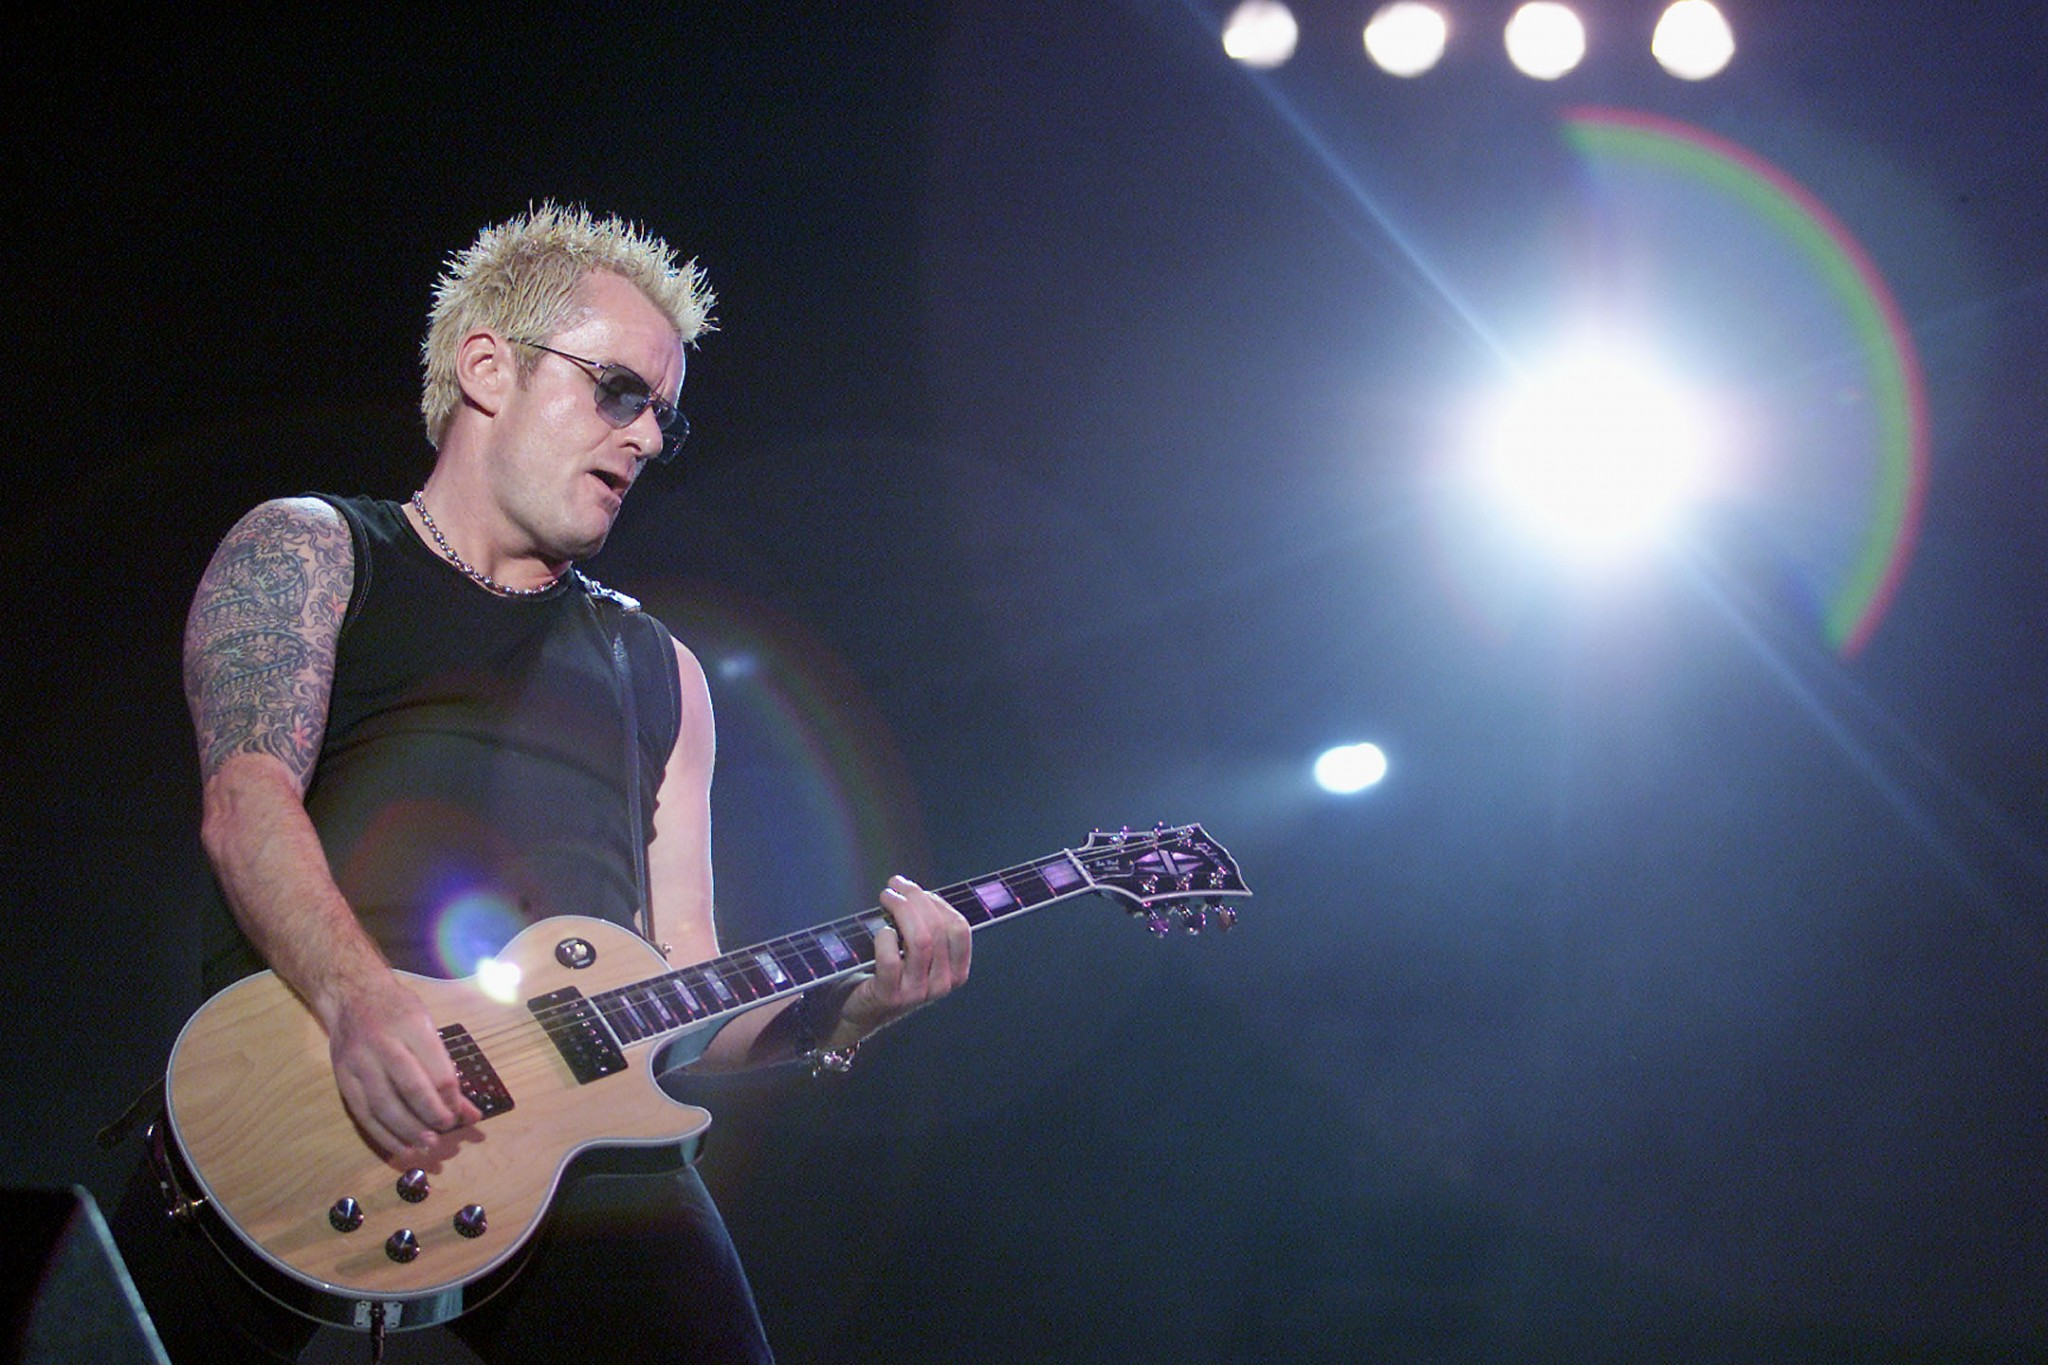 Billy Duffy on stage with The Cult – Loaded